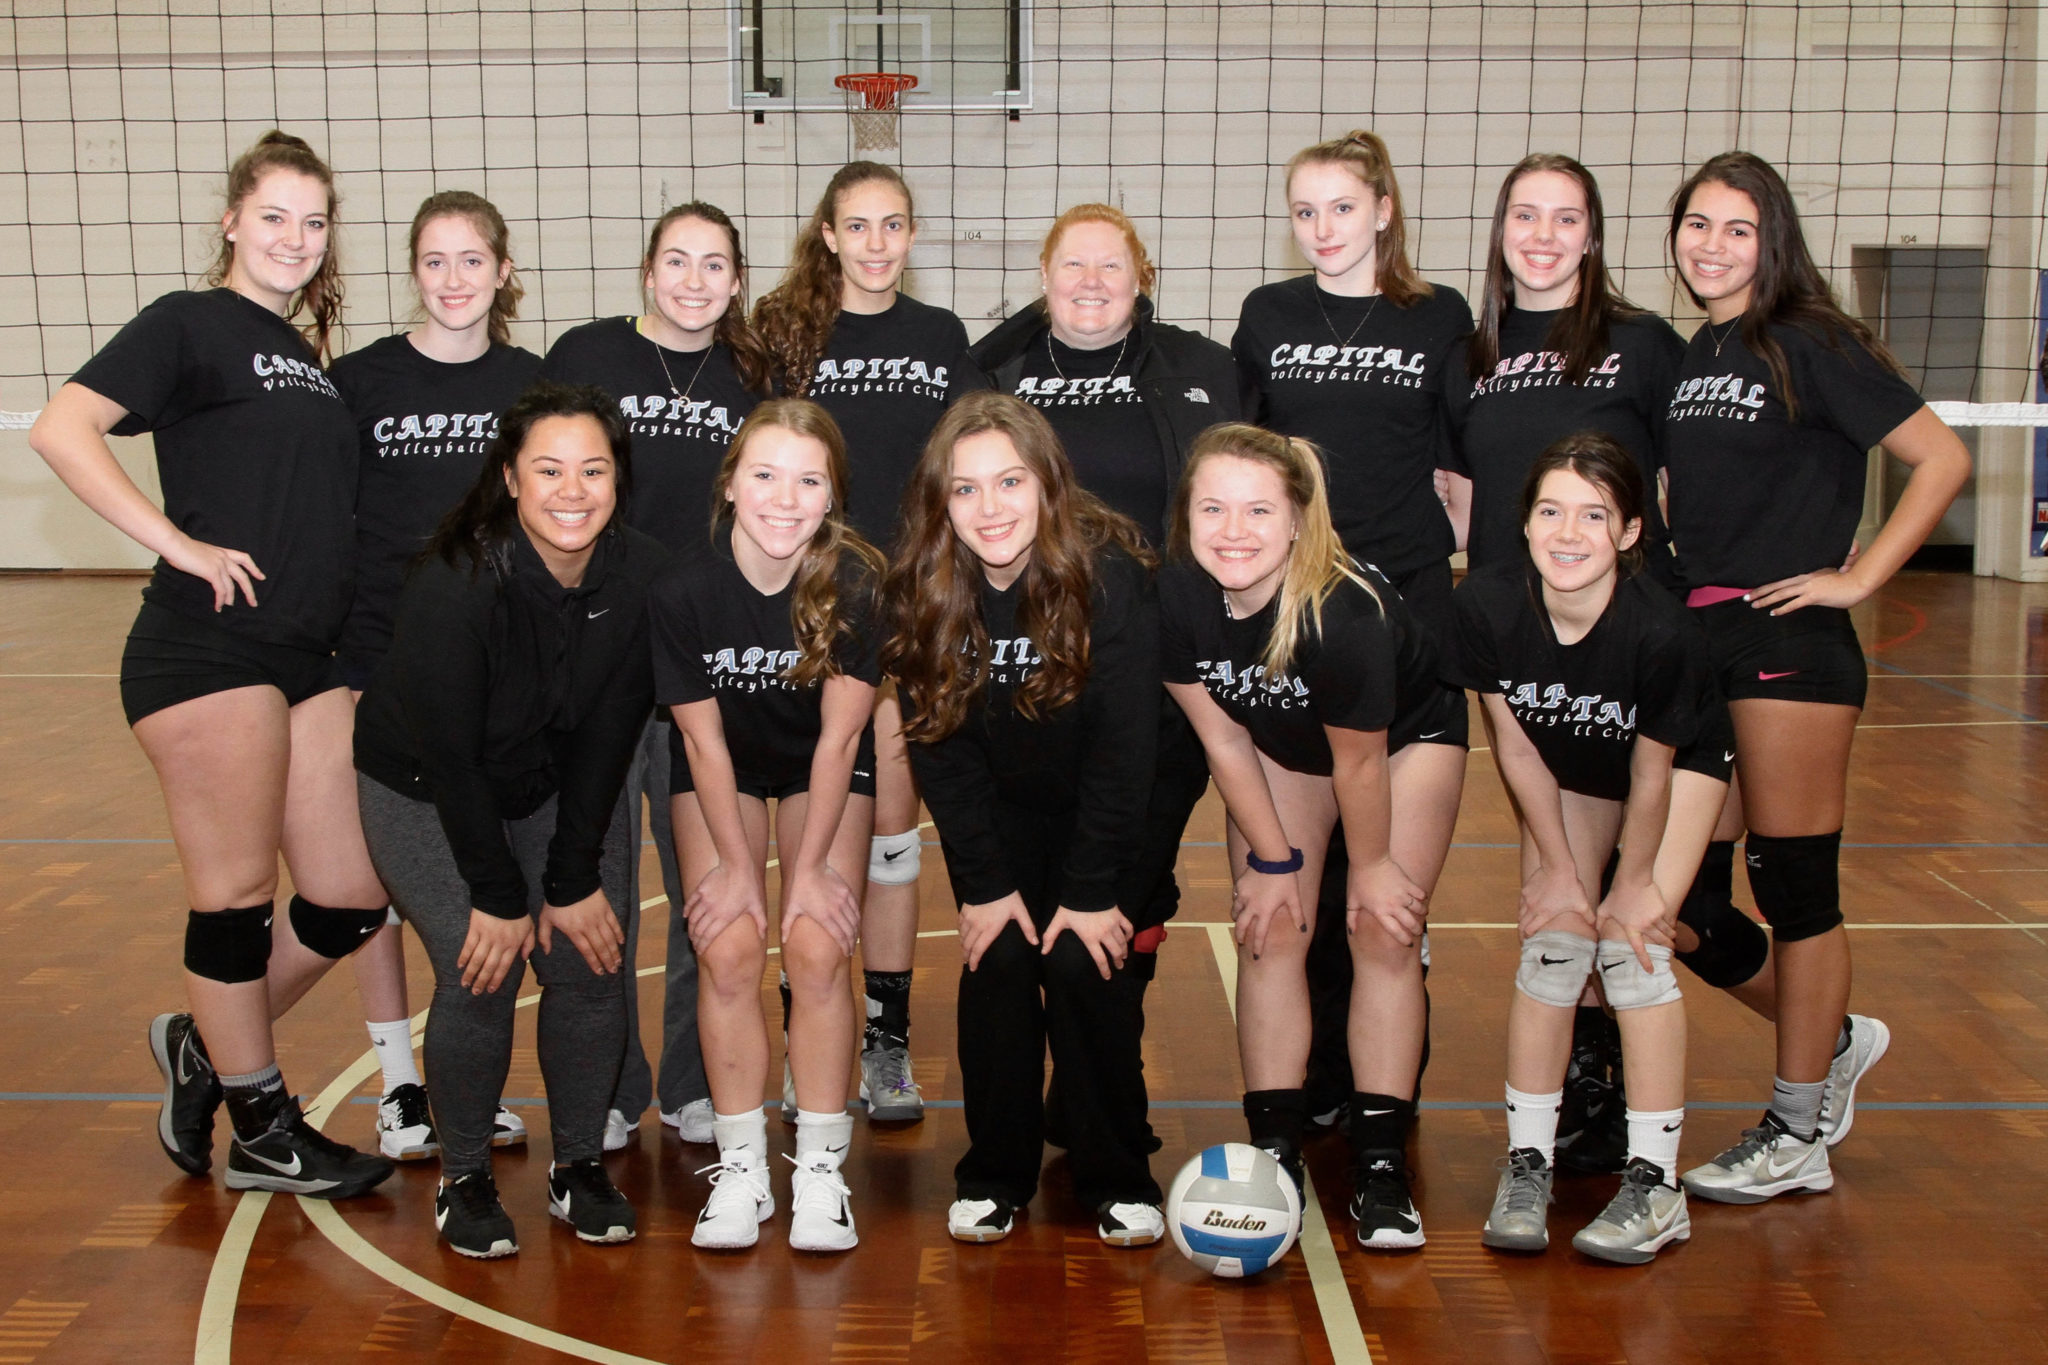 Capital Volleyball Club To Hold Tryouts For Upcoming Season Thurstontalk